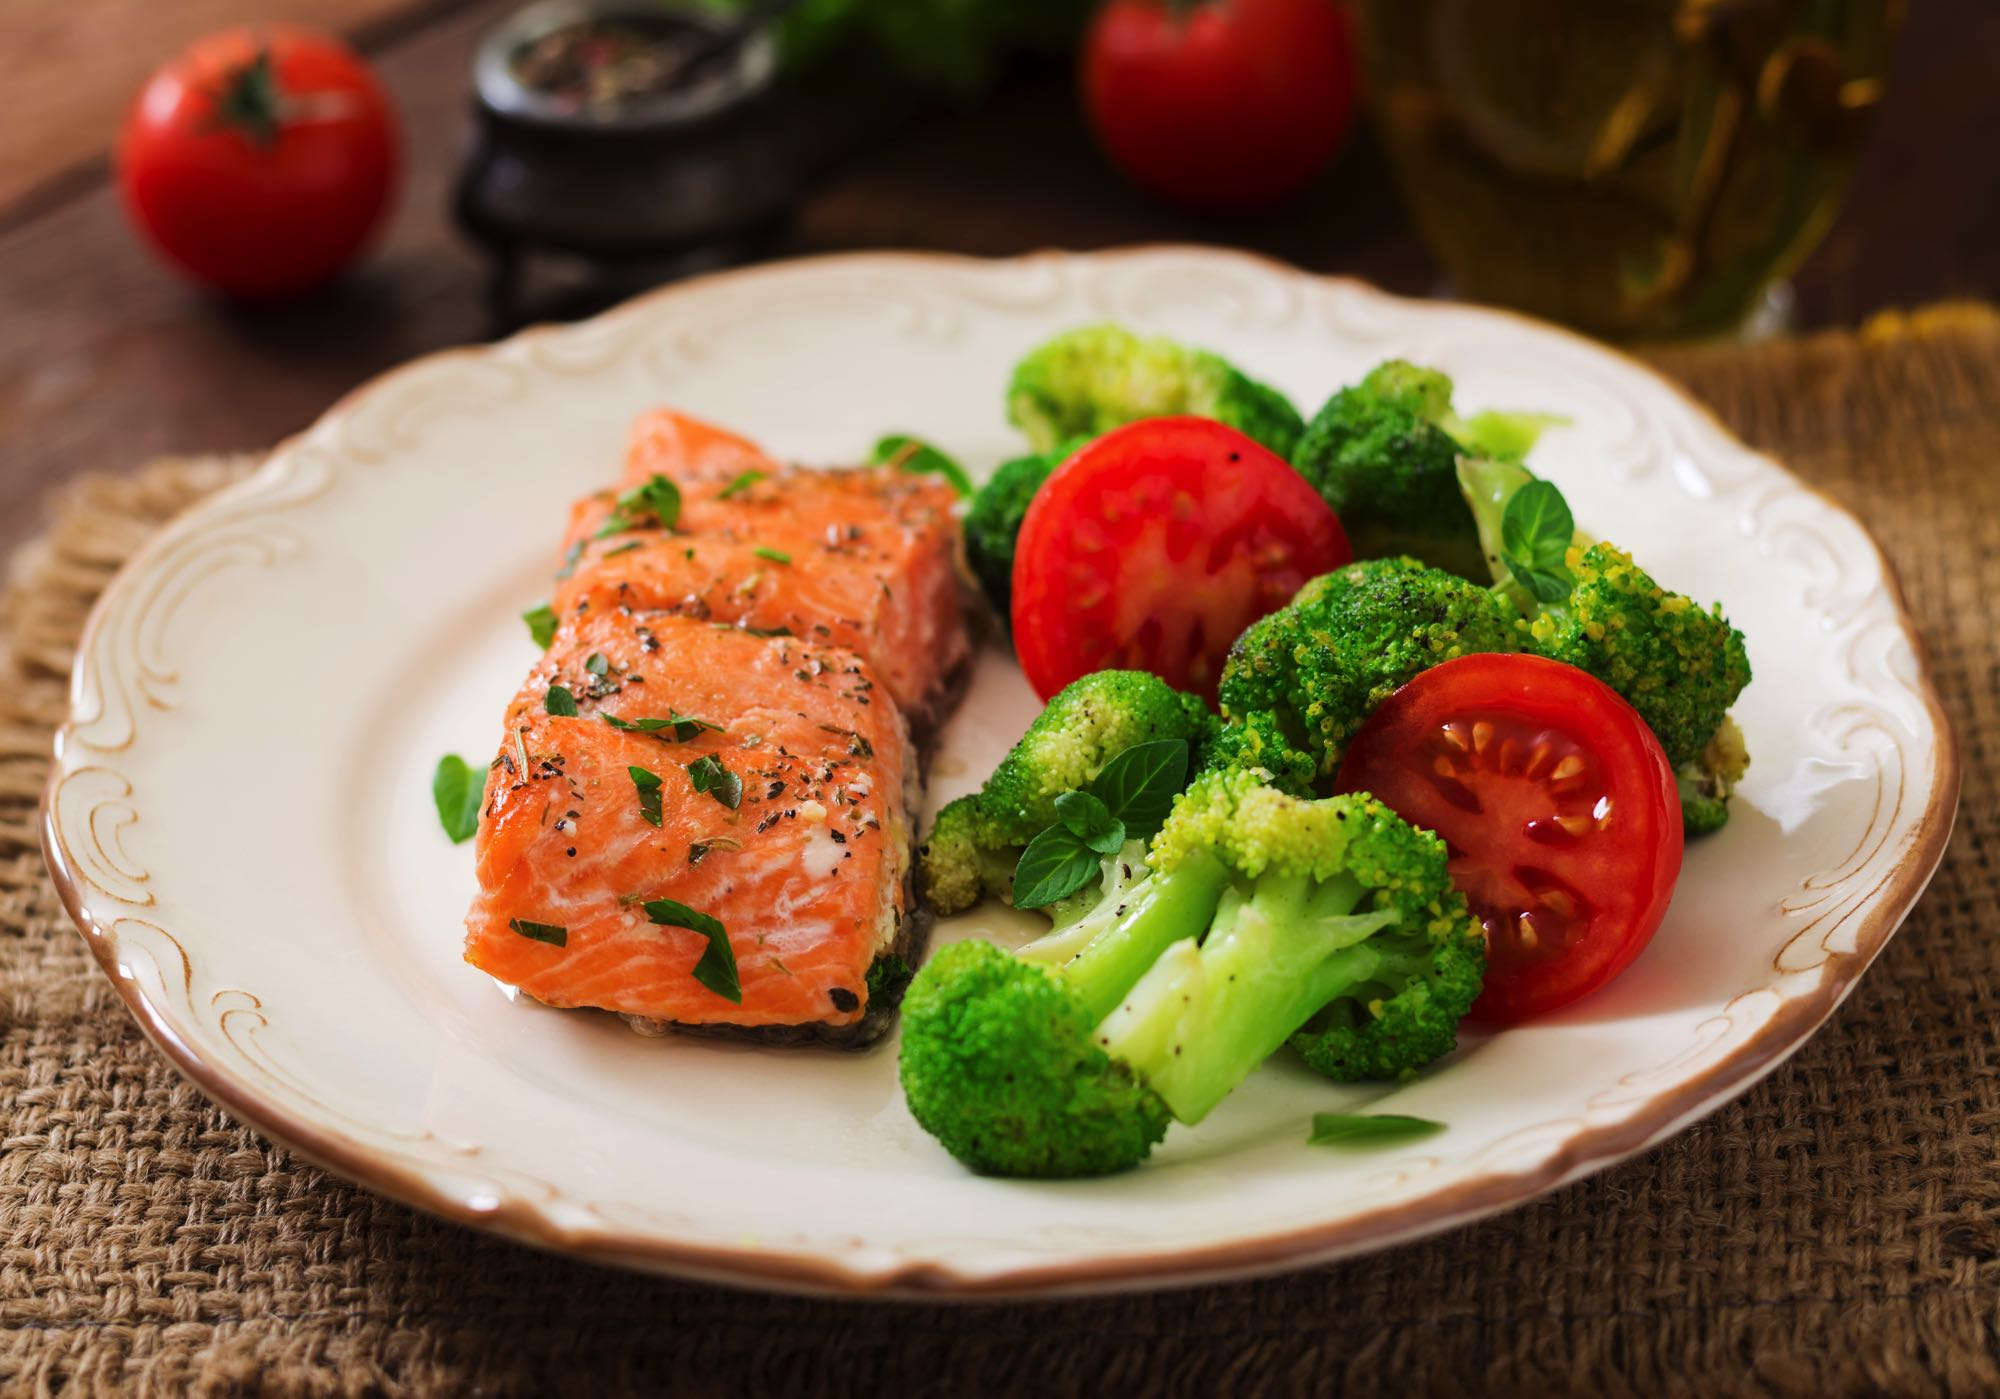 baked-fish-salmon-garnished-with-broccoli-and-toma-PBKGZRK